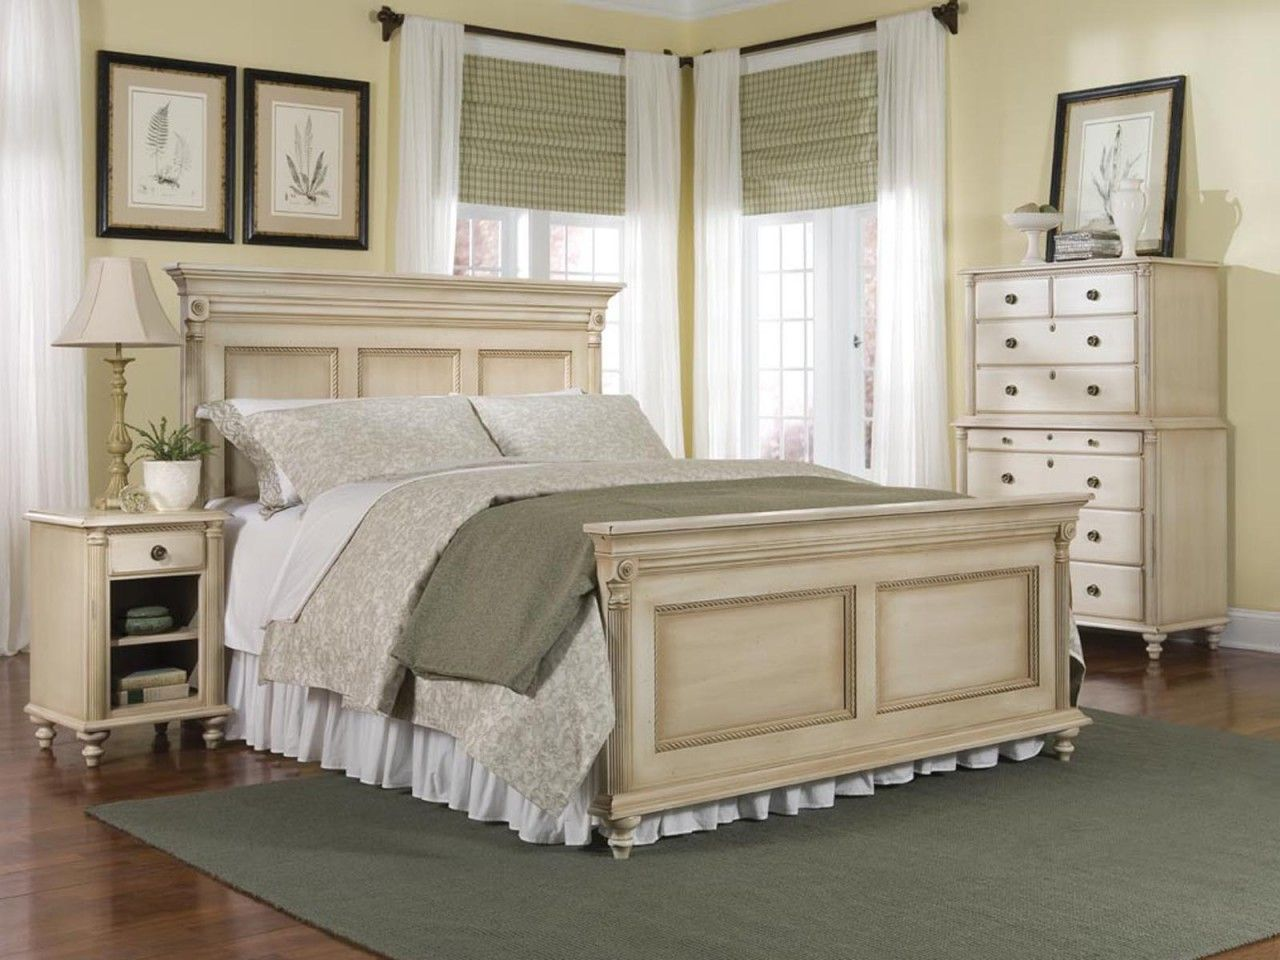 Cream Bedroom Furniture Setsdurham Furniture Savile Row 4 Piece